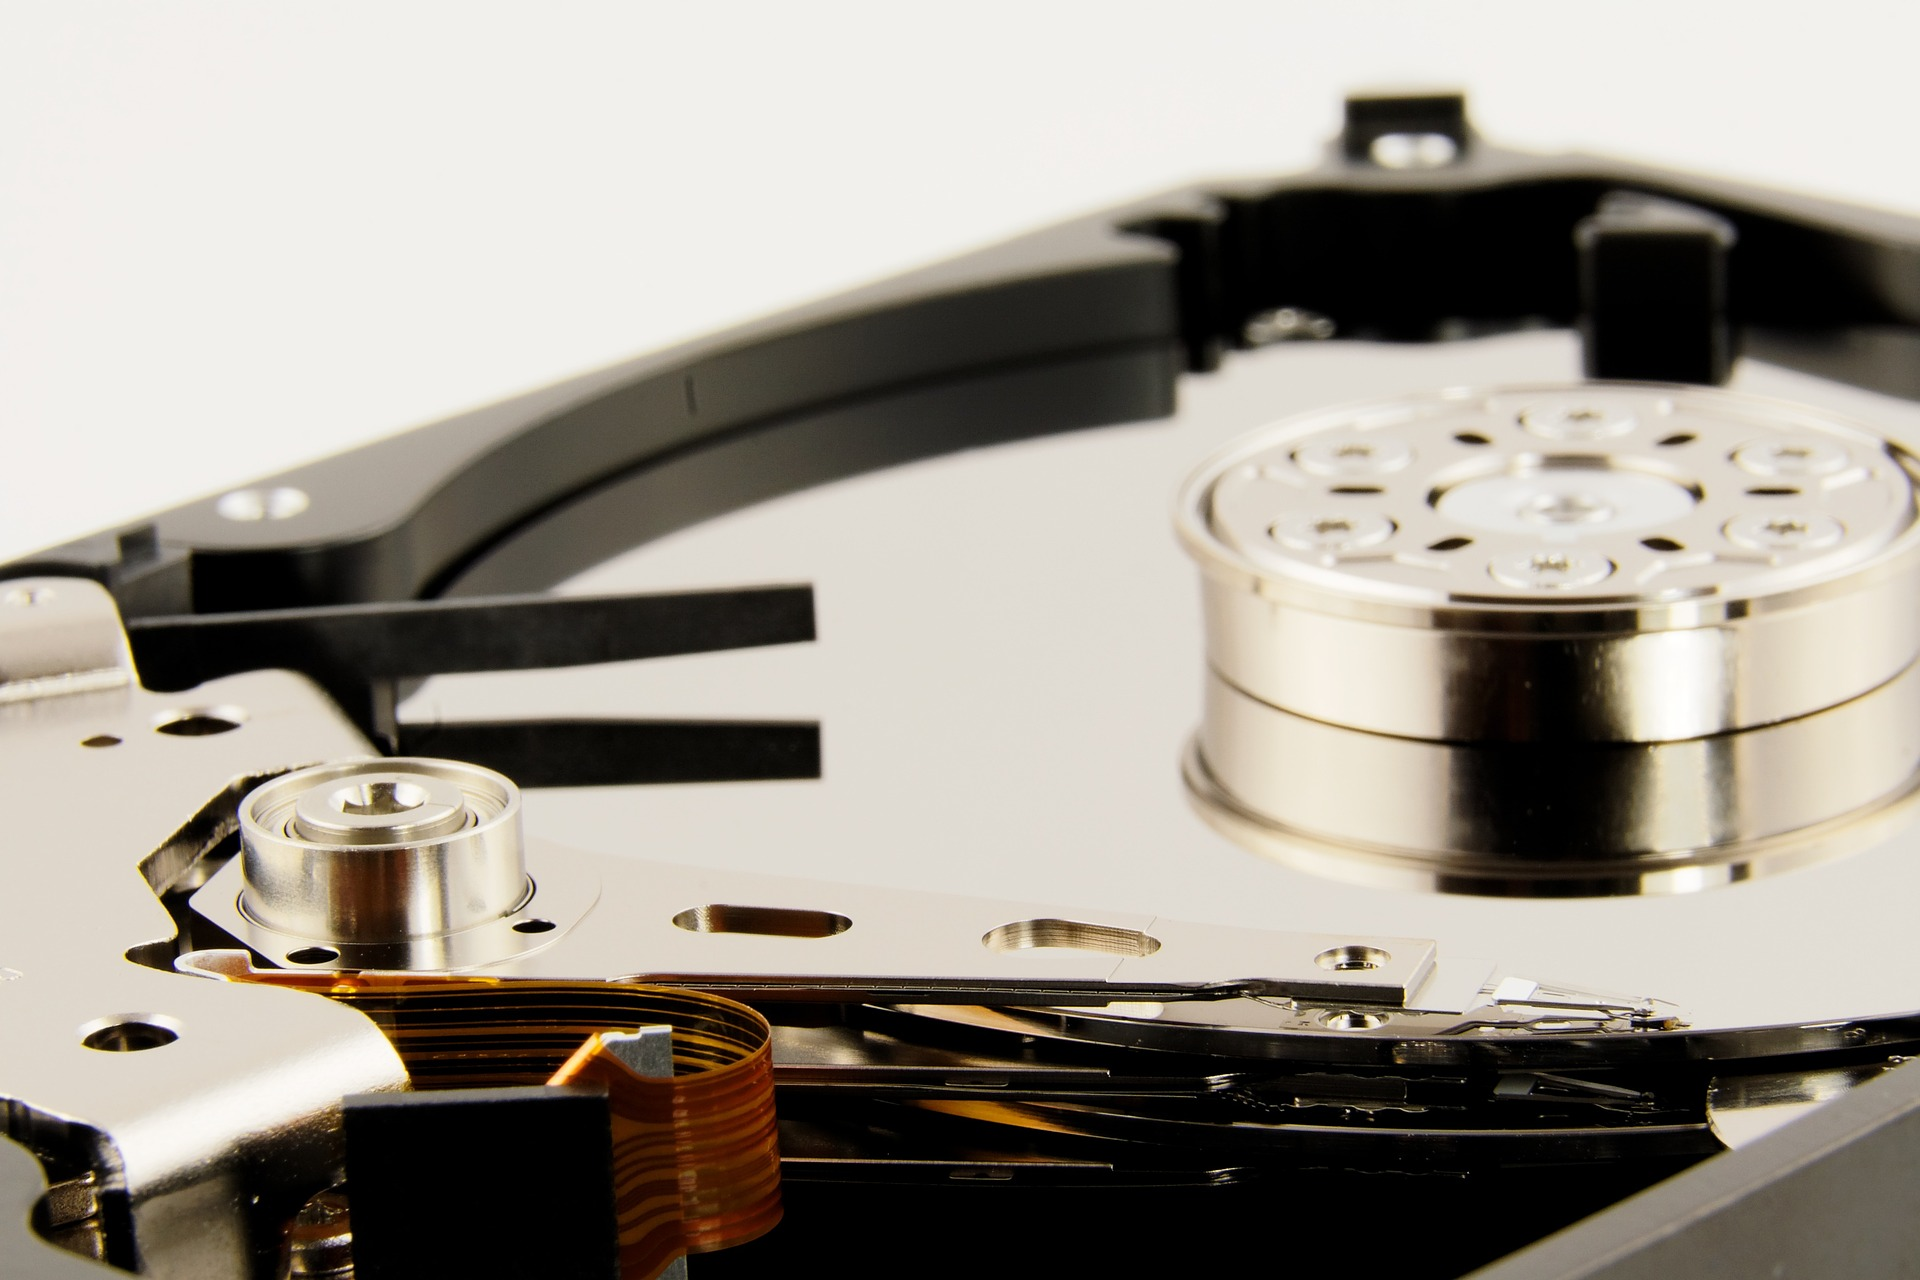 How to Deal with Hard Drive Recovery - Image 2